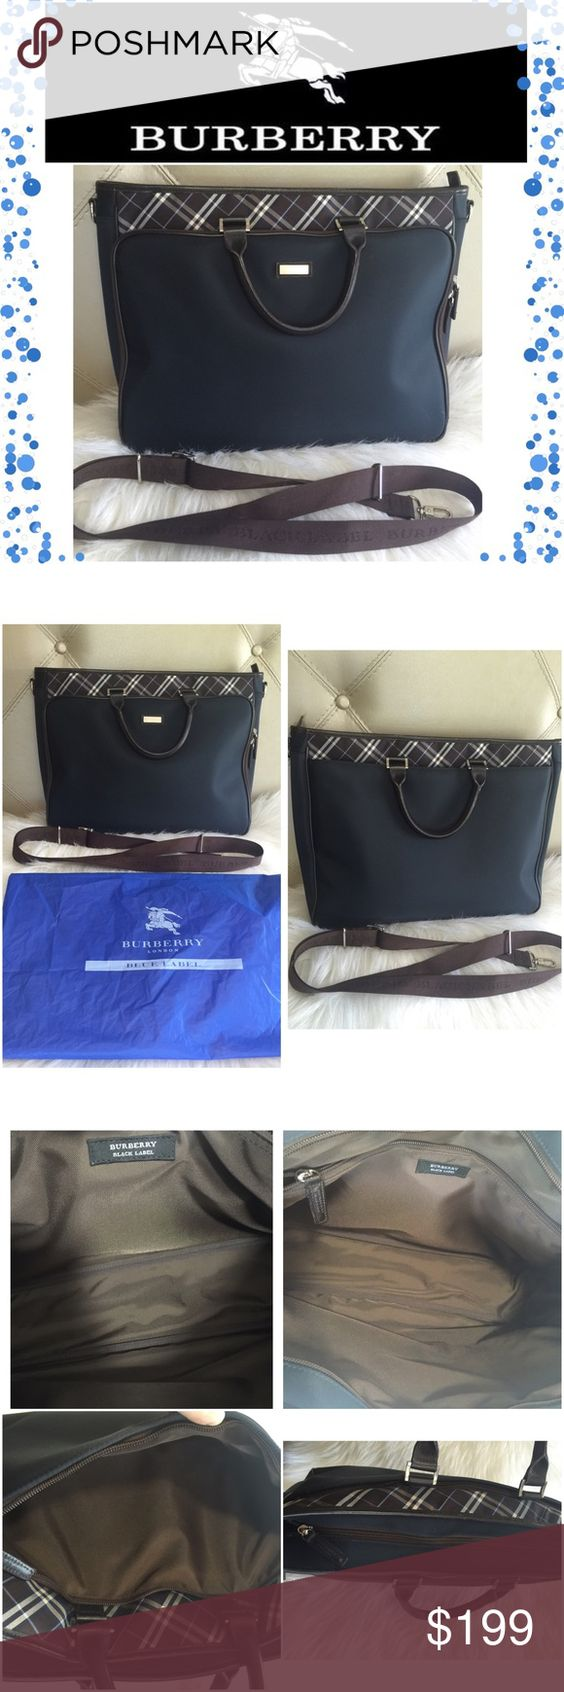 Authentic Burberry Business bag Great preowned condition. Burberry Black Label Messenger/Business bag.  The bag features a navy blue nylon body with signature Burberry check embellishments.  Leather corners/handles & piping are constructed of dark brown leather. Adjustable, removable strap features silver hardware and nylon webbing.  Front compartment has organizational pockets for pens, mobile phone etc. Main compartment features a zipped patch pocket. Back compartment is zippered as well…